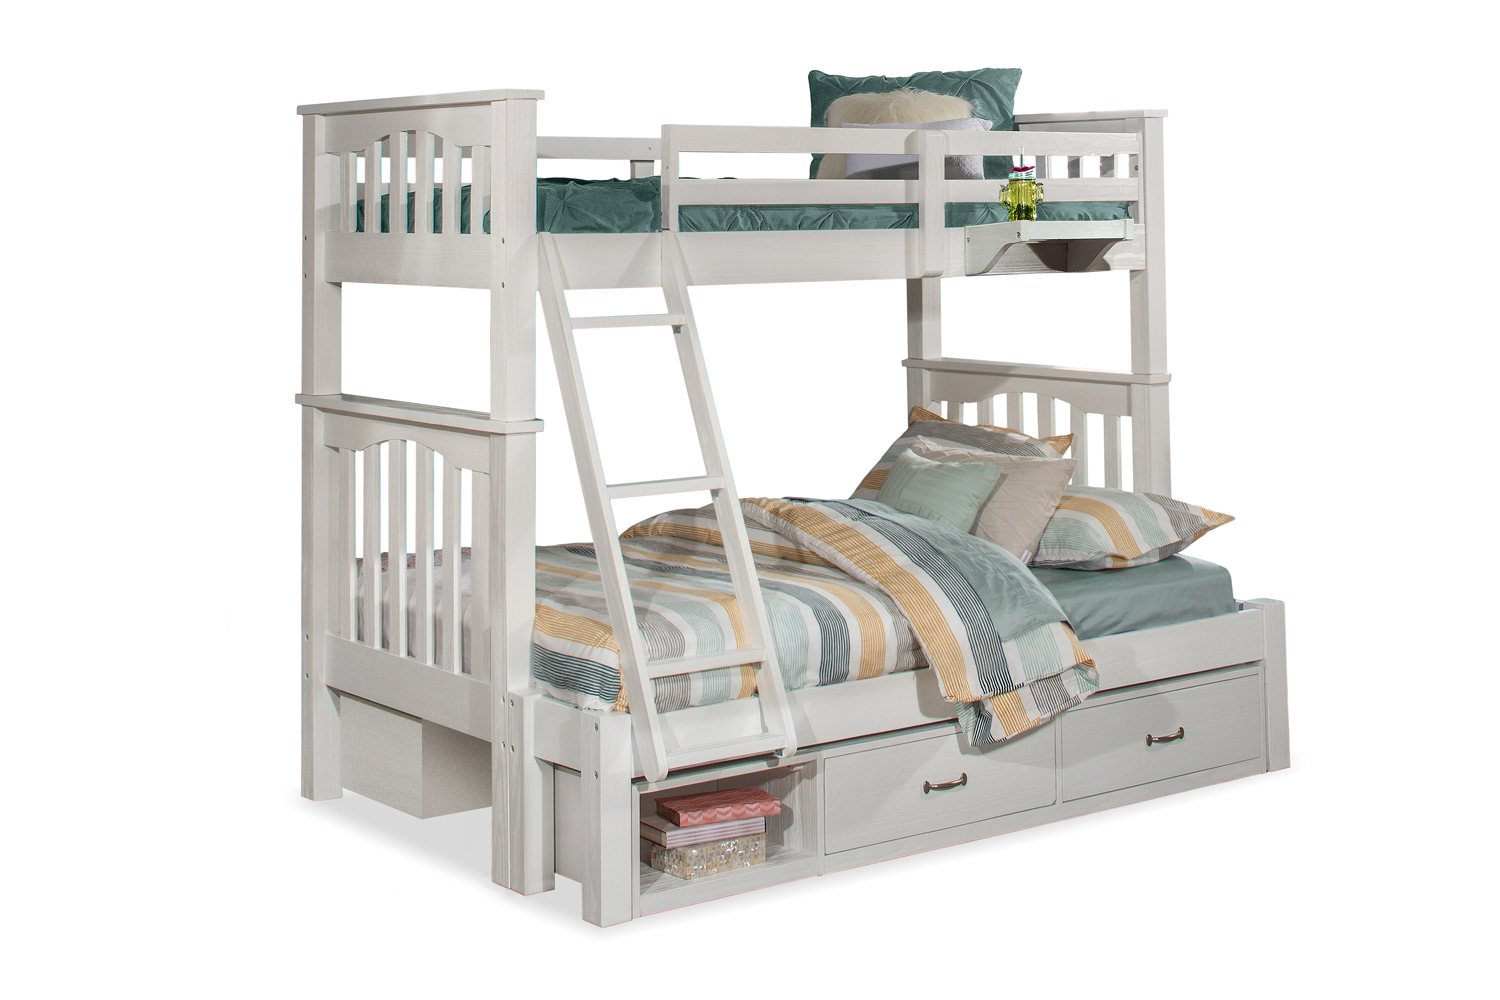 NE Kids Highlands Harper Twin/Full Bunk Bed with (2) Storage Units and Hanging Nightstand - White Finish